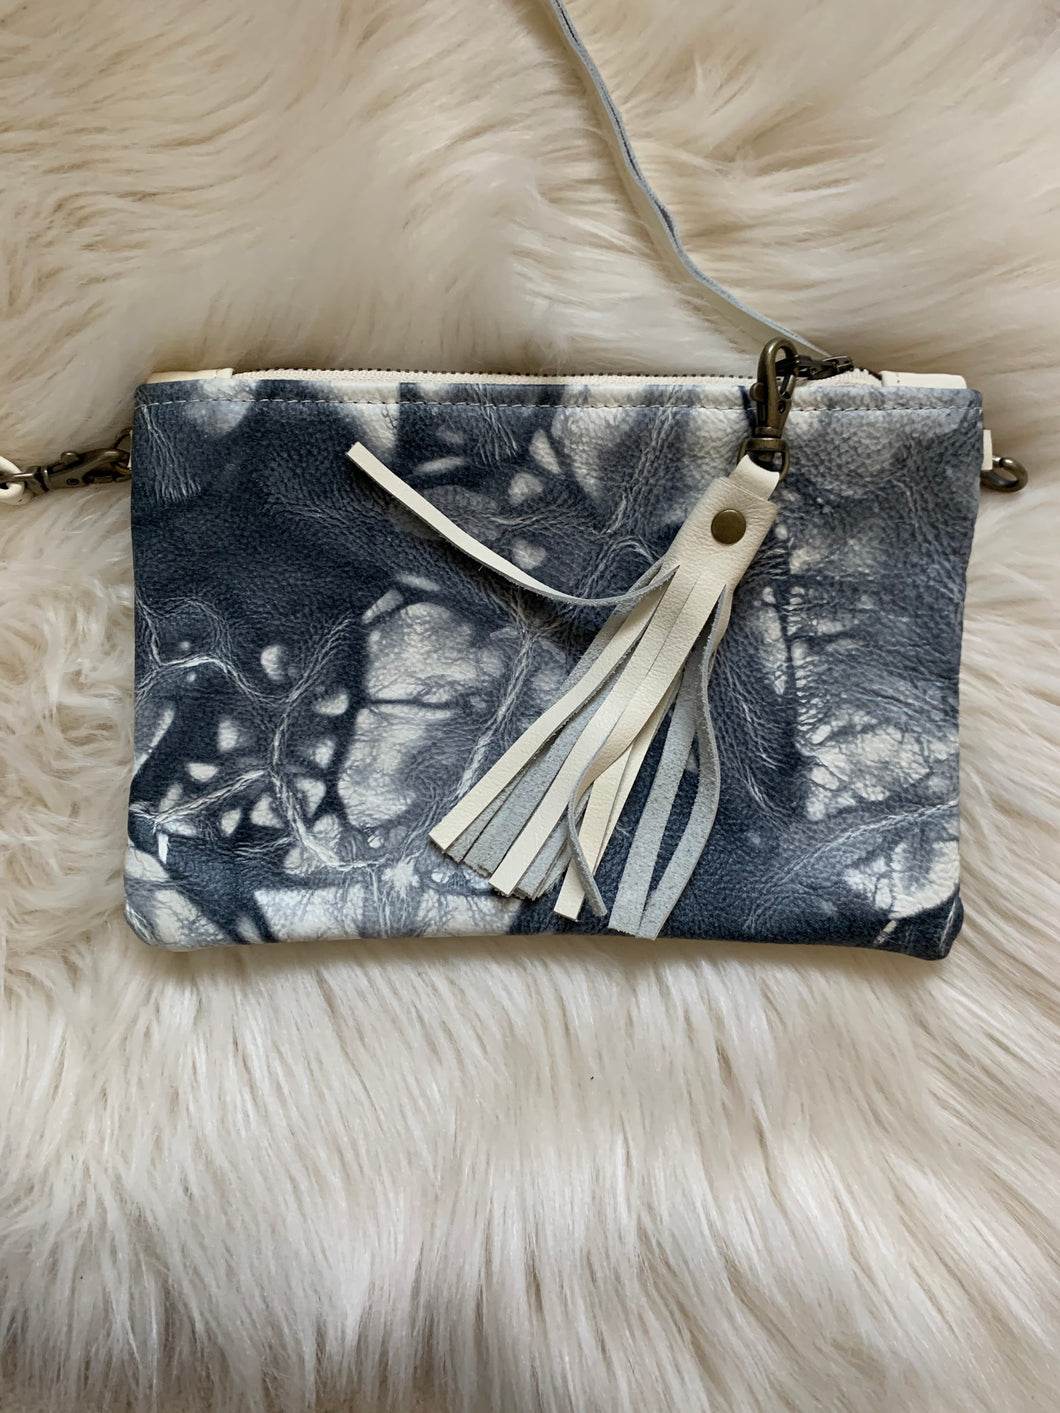 Black and cream tie-dye Beth Ann with cream leather